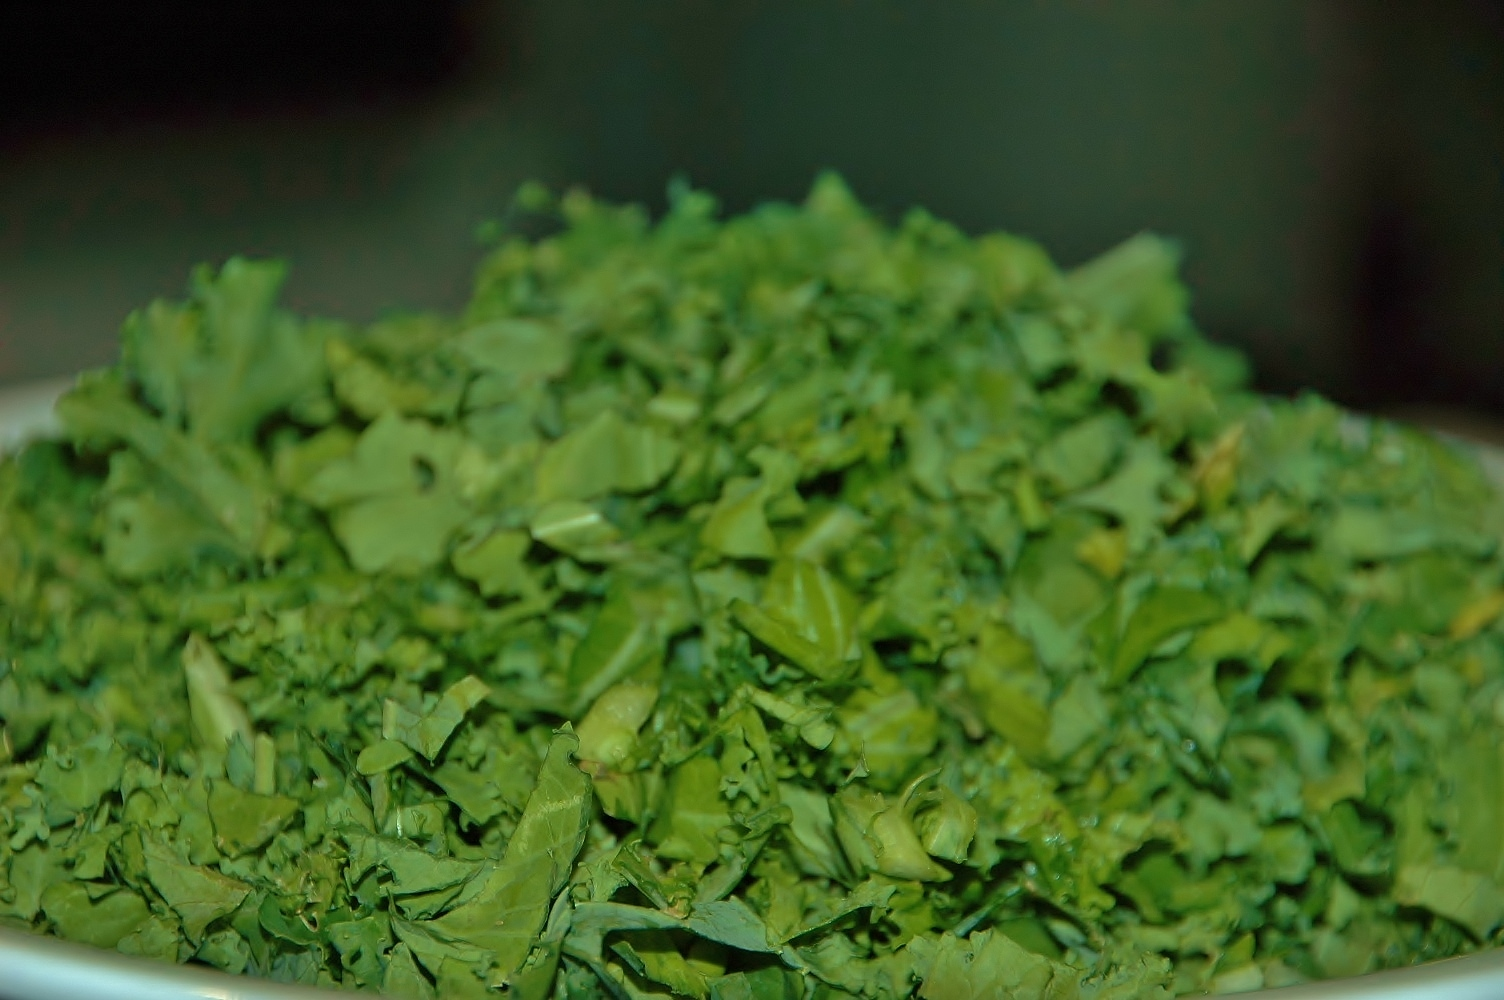 Finely chopped kale leaves awaiting their amazing dressing!